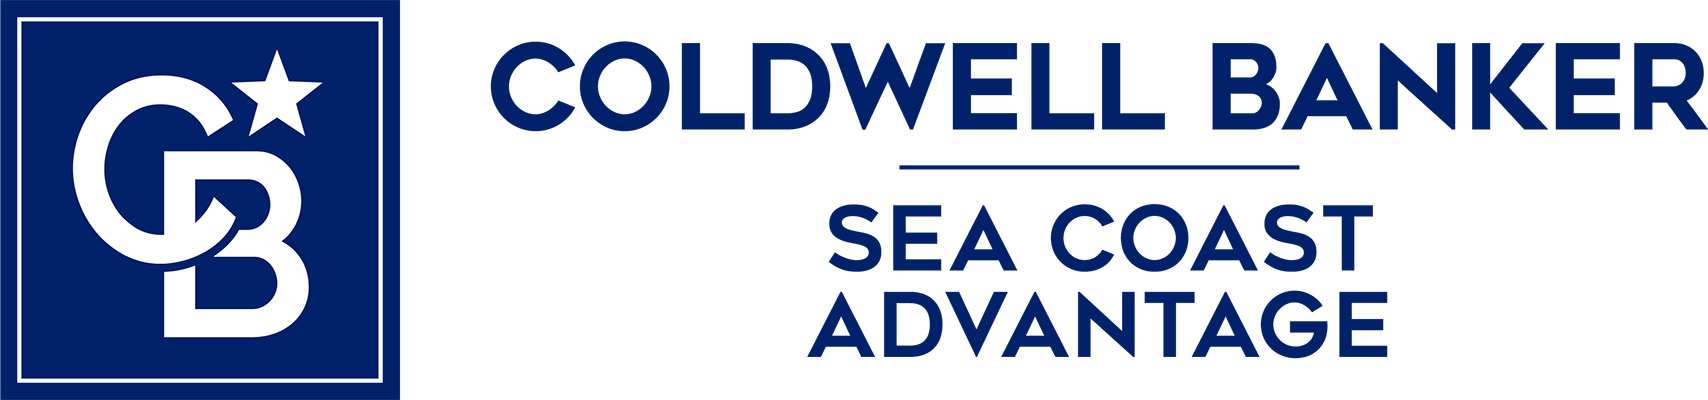 Kibbi Rieber - Coldwell Banker Sea Coast Advantage Realty Logo